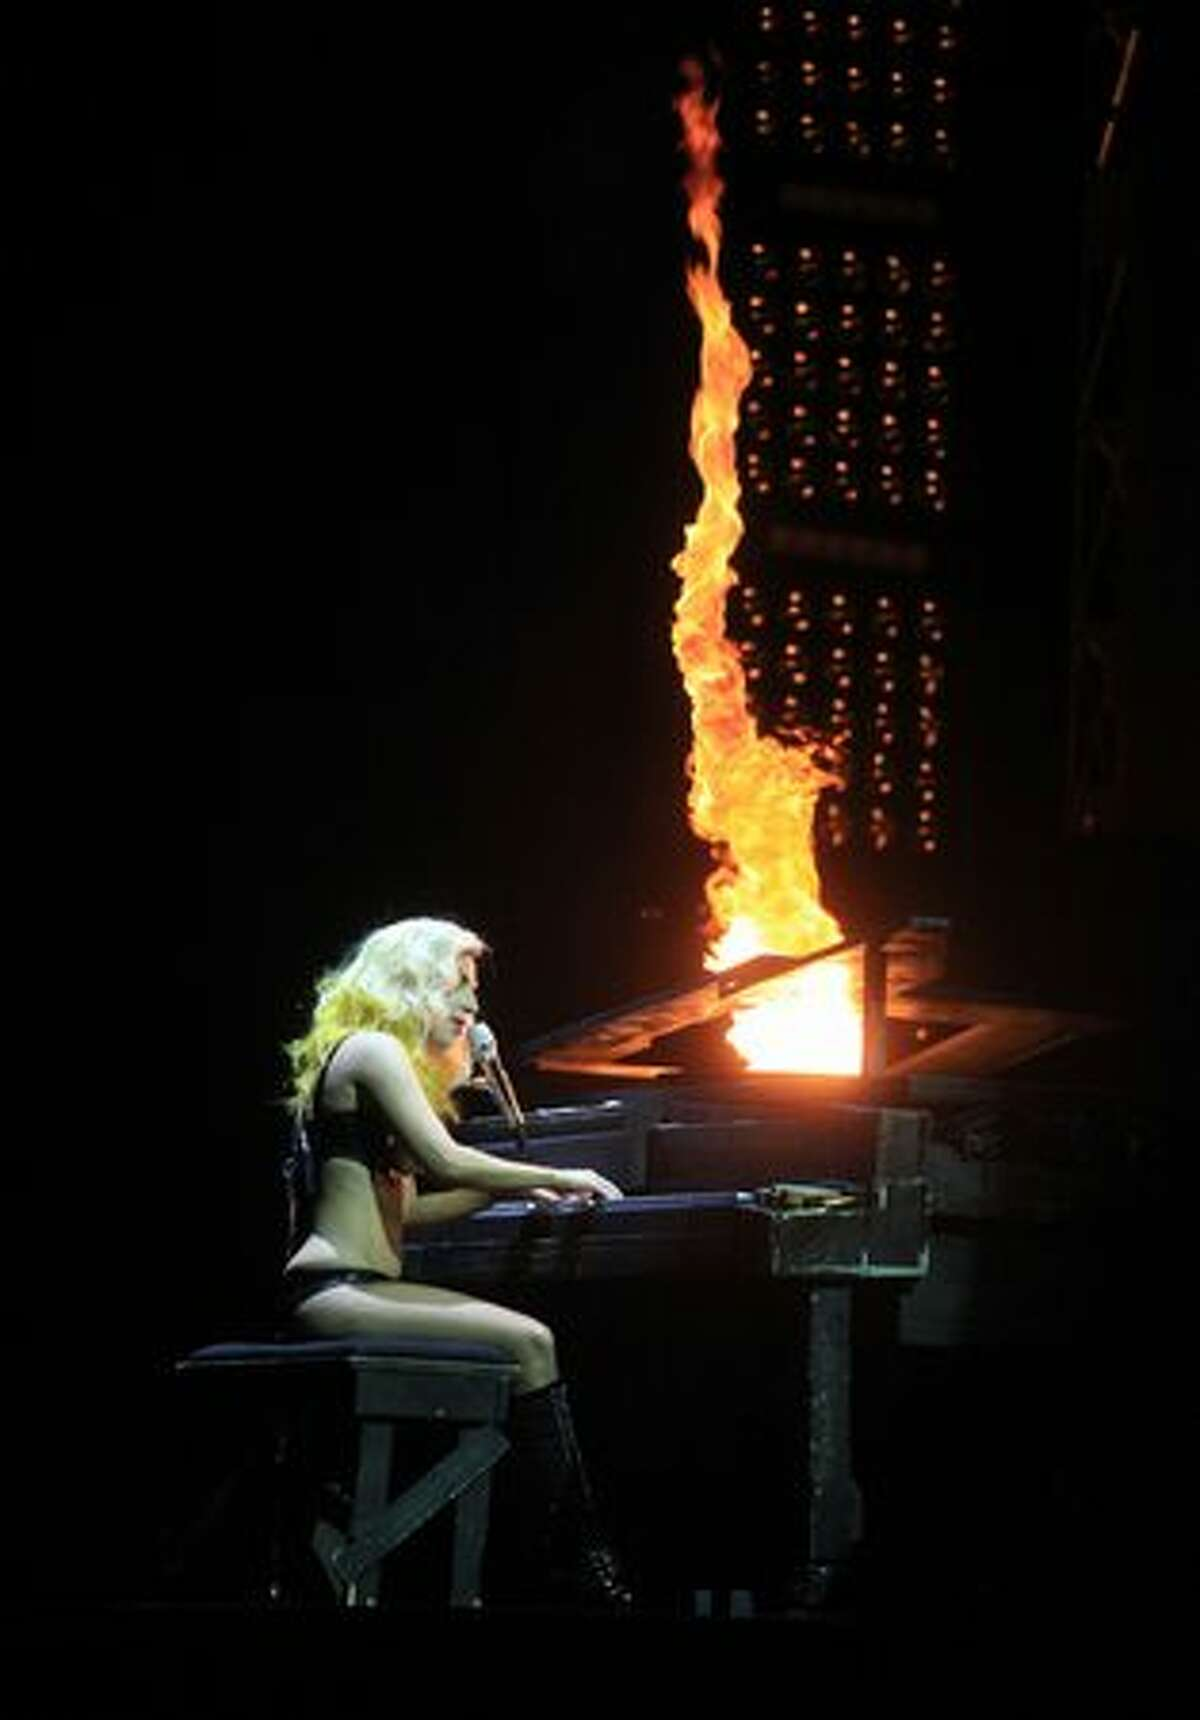 Lady Gaga performs her song Speechless during a show at the Tacoma Dome on Saturday August 21, 2010.